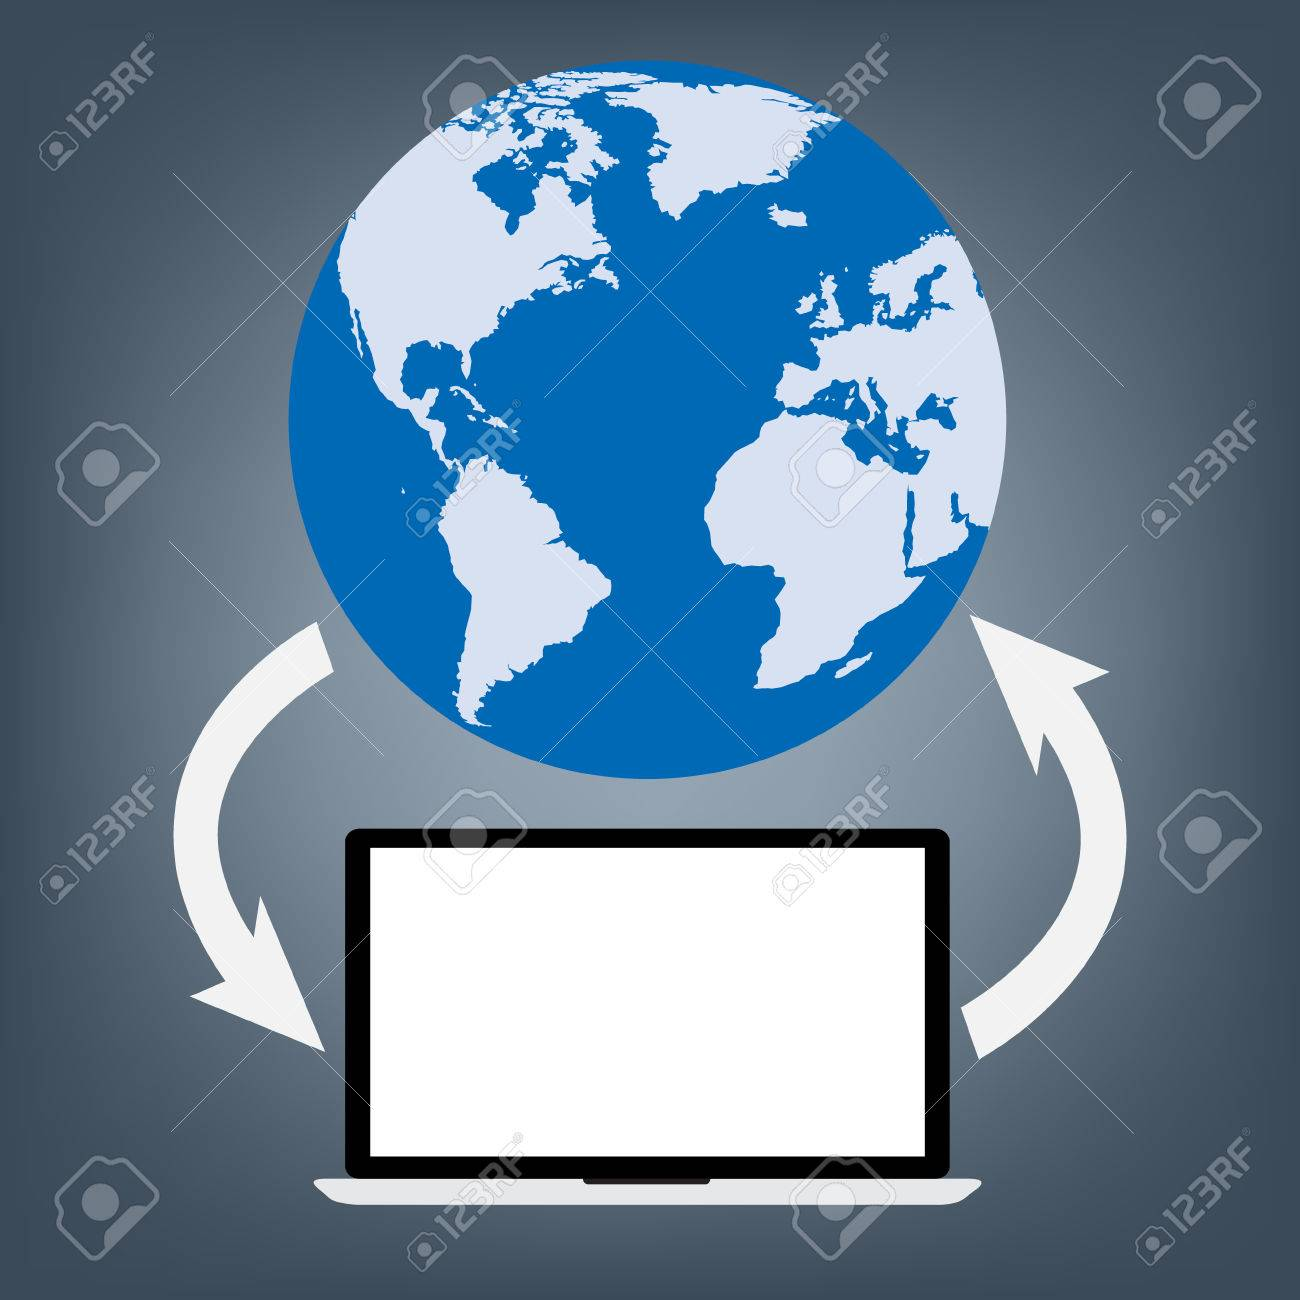 Computer laptop connected to world map globe for upload and download computer laptop connected to world map globe for upload and download data vector illustration cloud gumiabroncs Choice Image